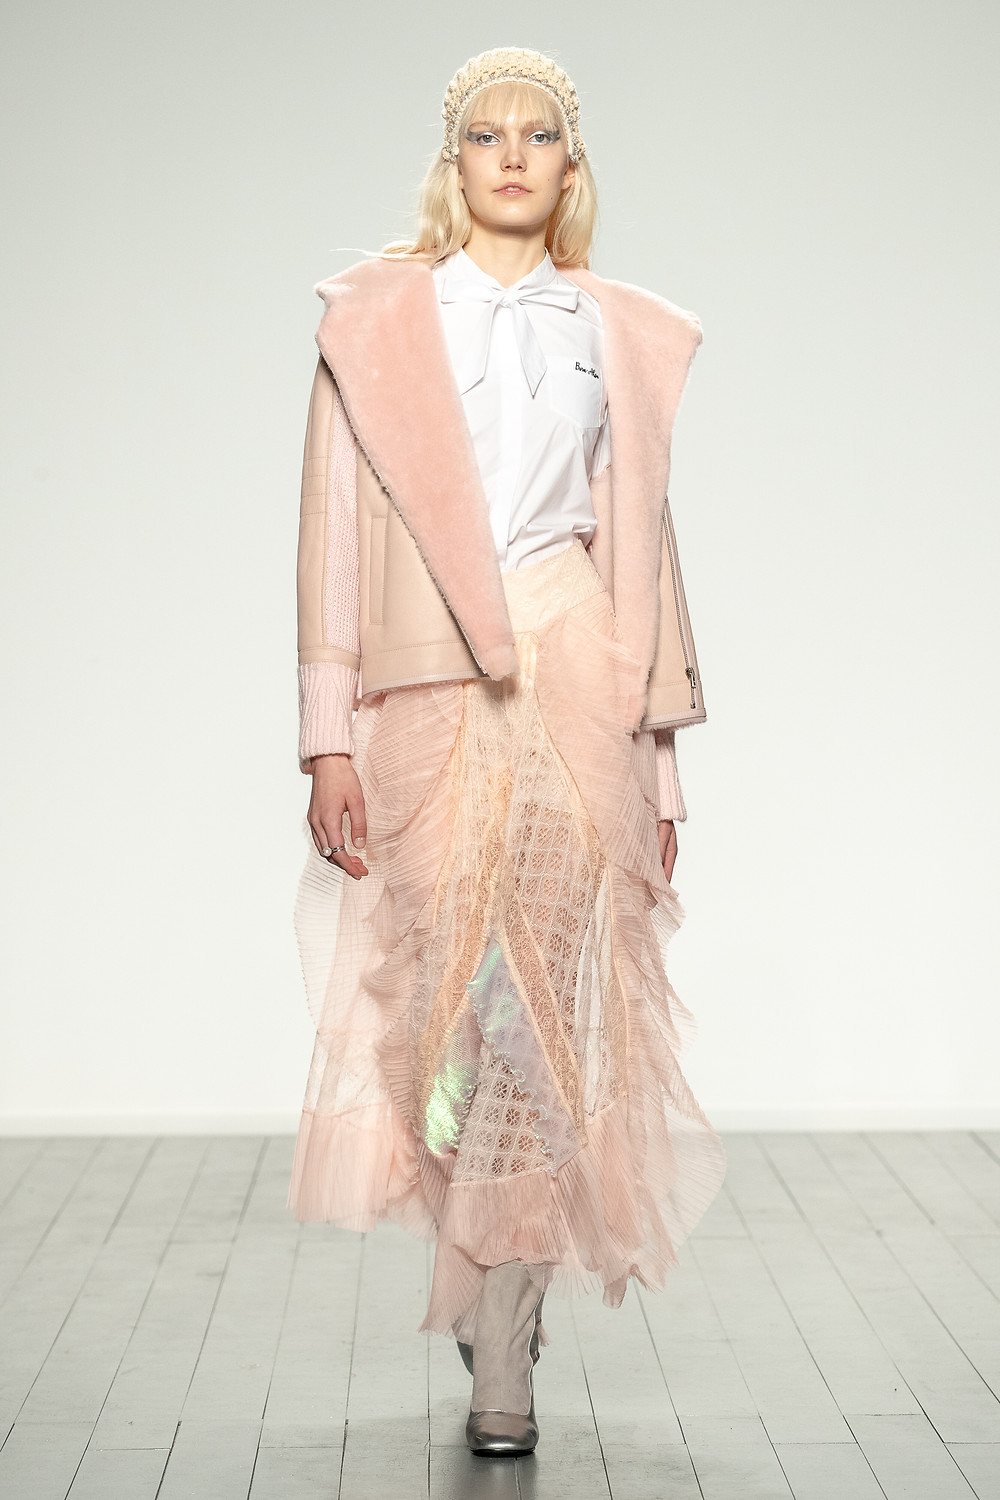 BORA AKSU Autumn/Winter 2019 at London Fashion Week